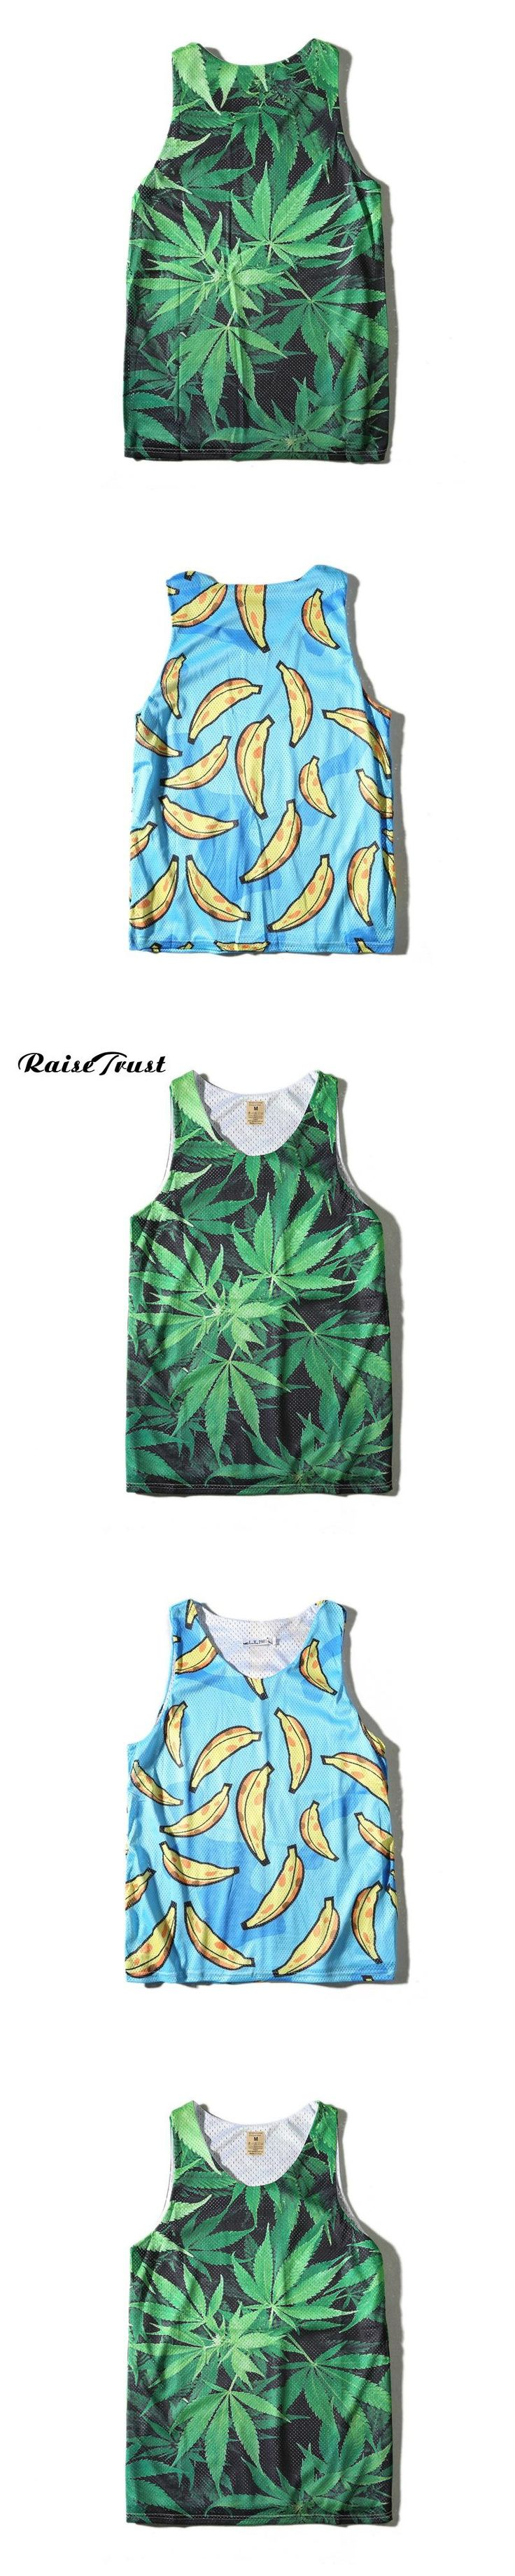 2017 Gyms Tank Top For Men Summer Sleeveless Large Size Casual Bodybuilding Clothing 3d Printing Character Fitness Singlet Vest